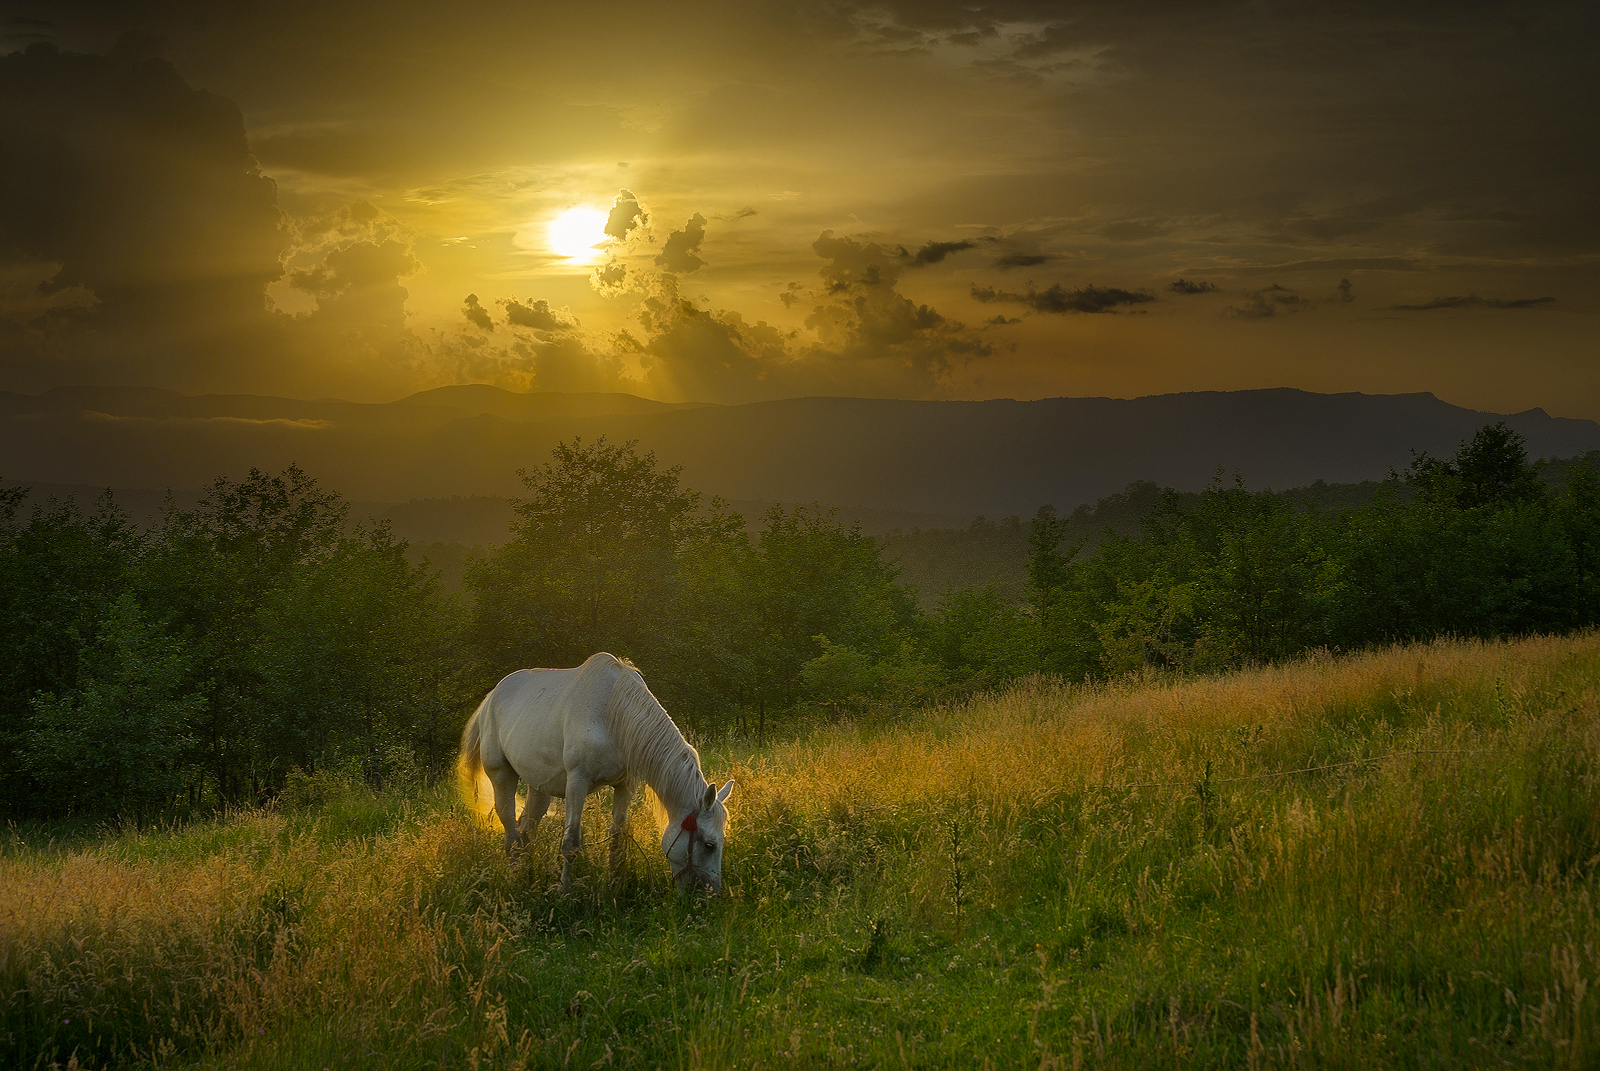 The Horse in the Carpathians